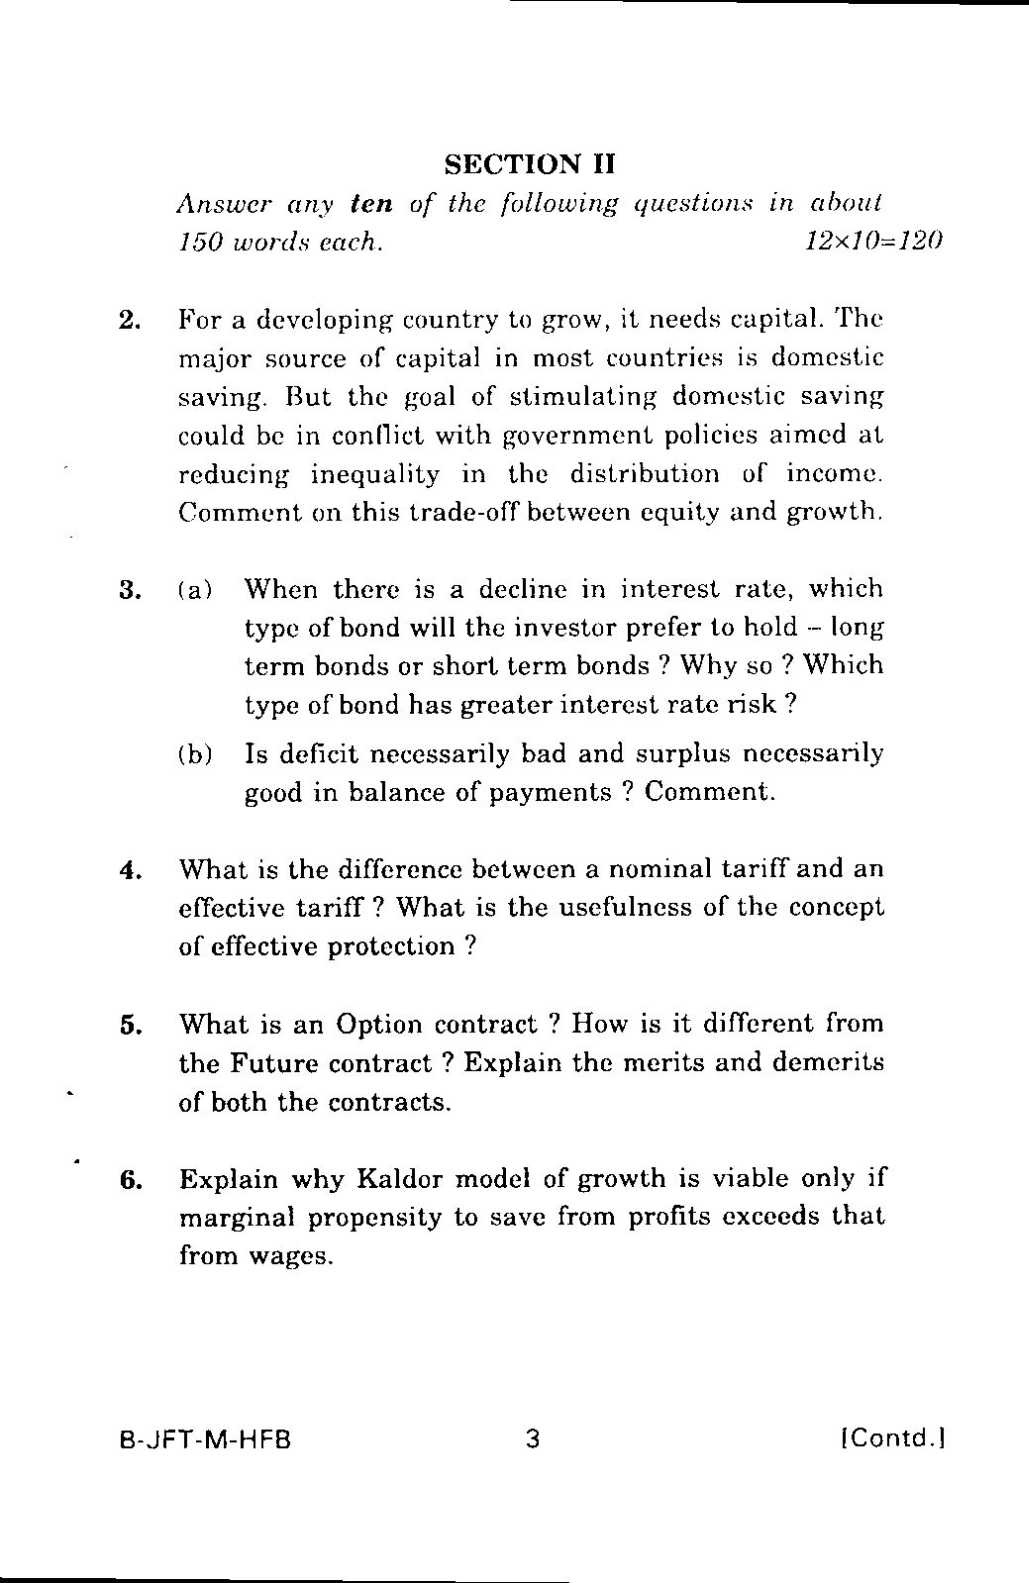 012 Essay Example How Long Is Word Definition Paper Extended Indian Economic Service Exam General Economics Ii Previous Years Question P Fantastic A 600 600-900 400 Full